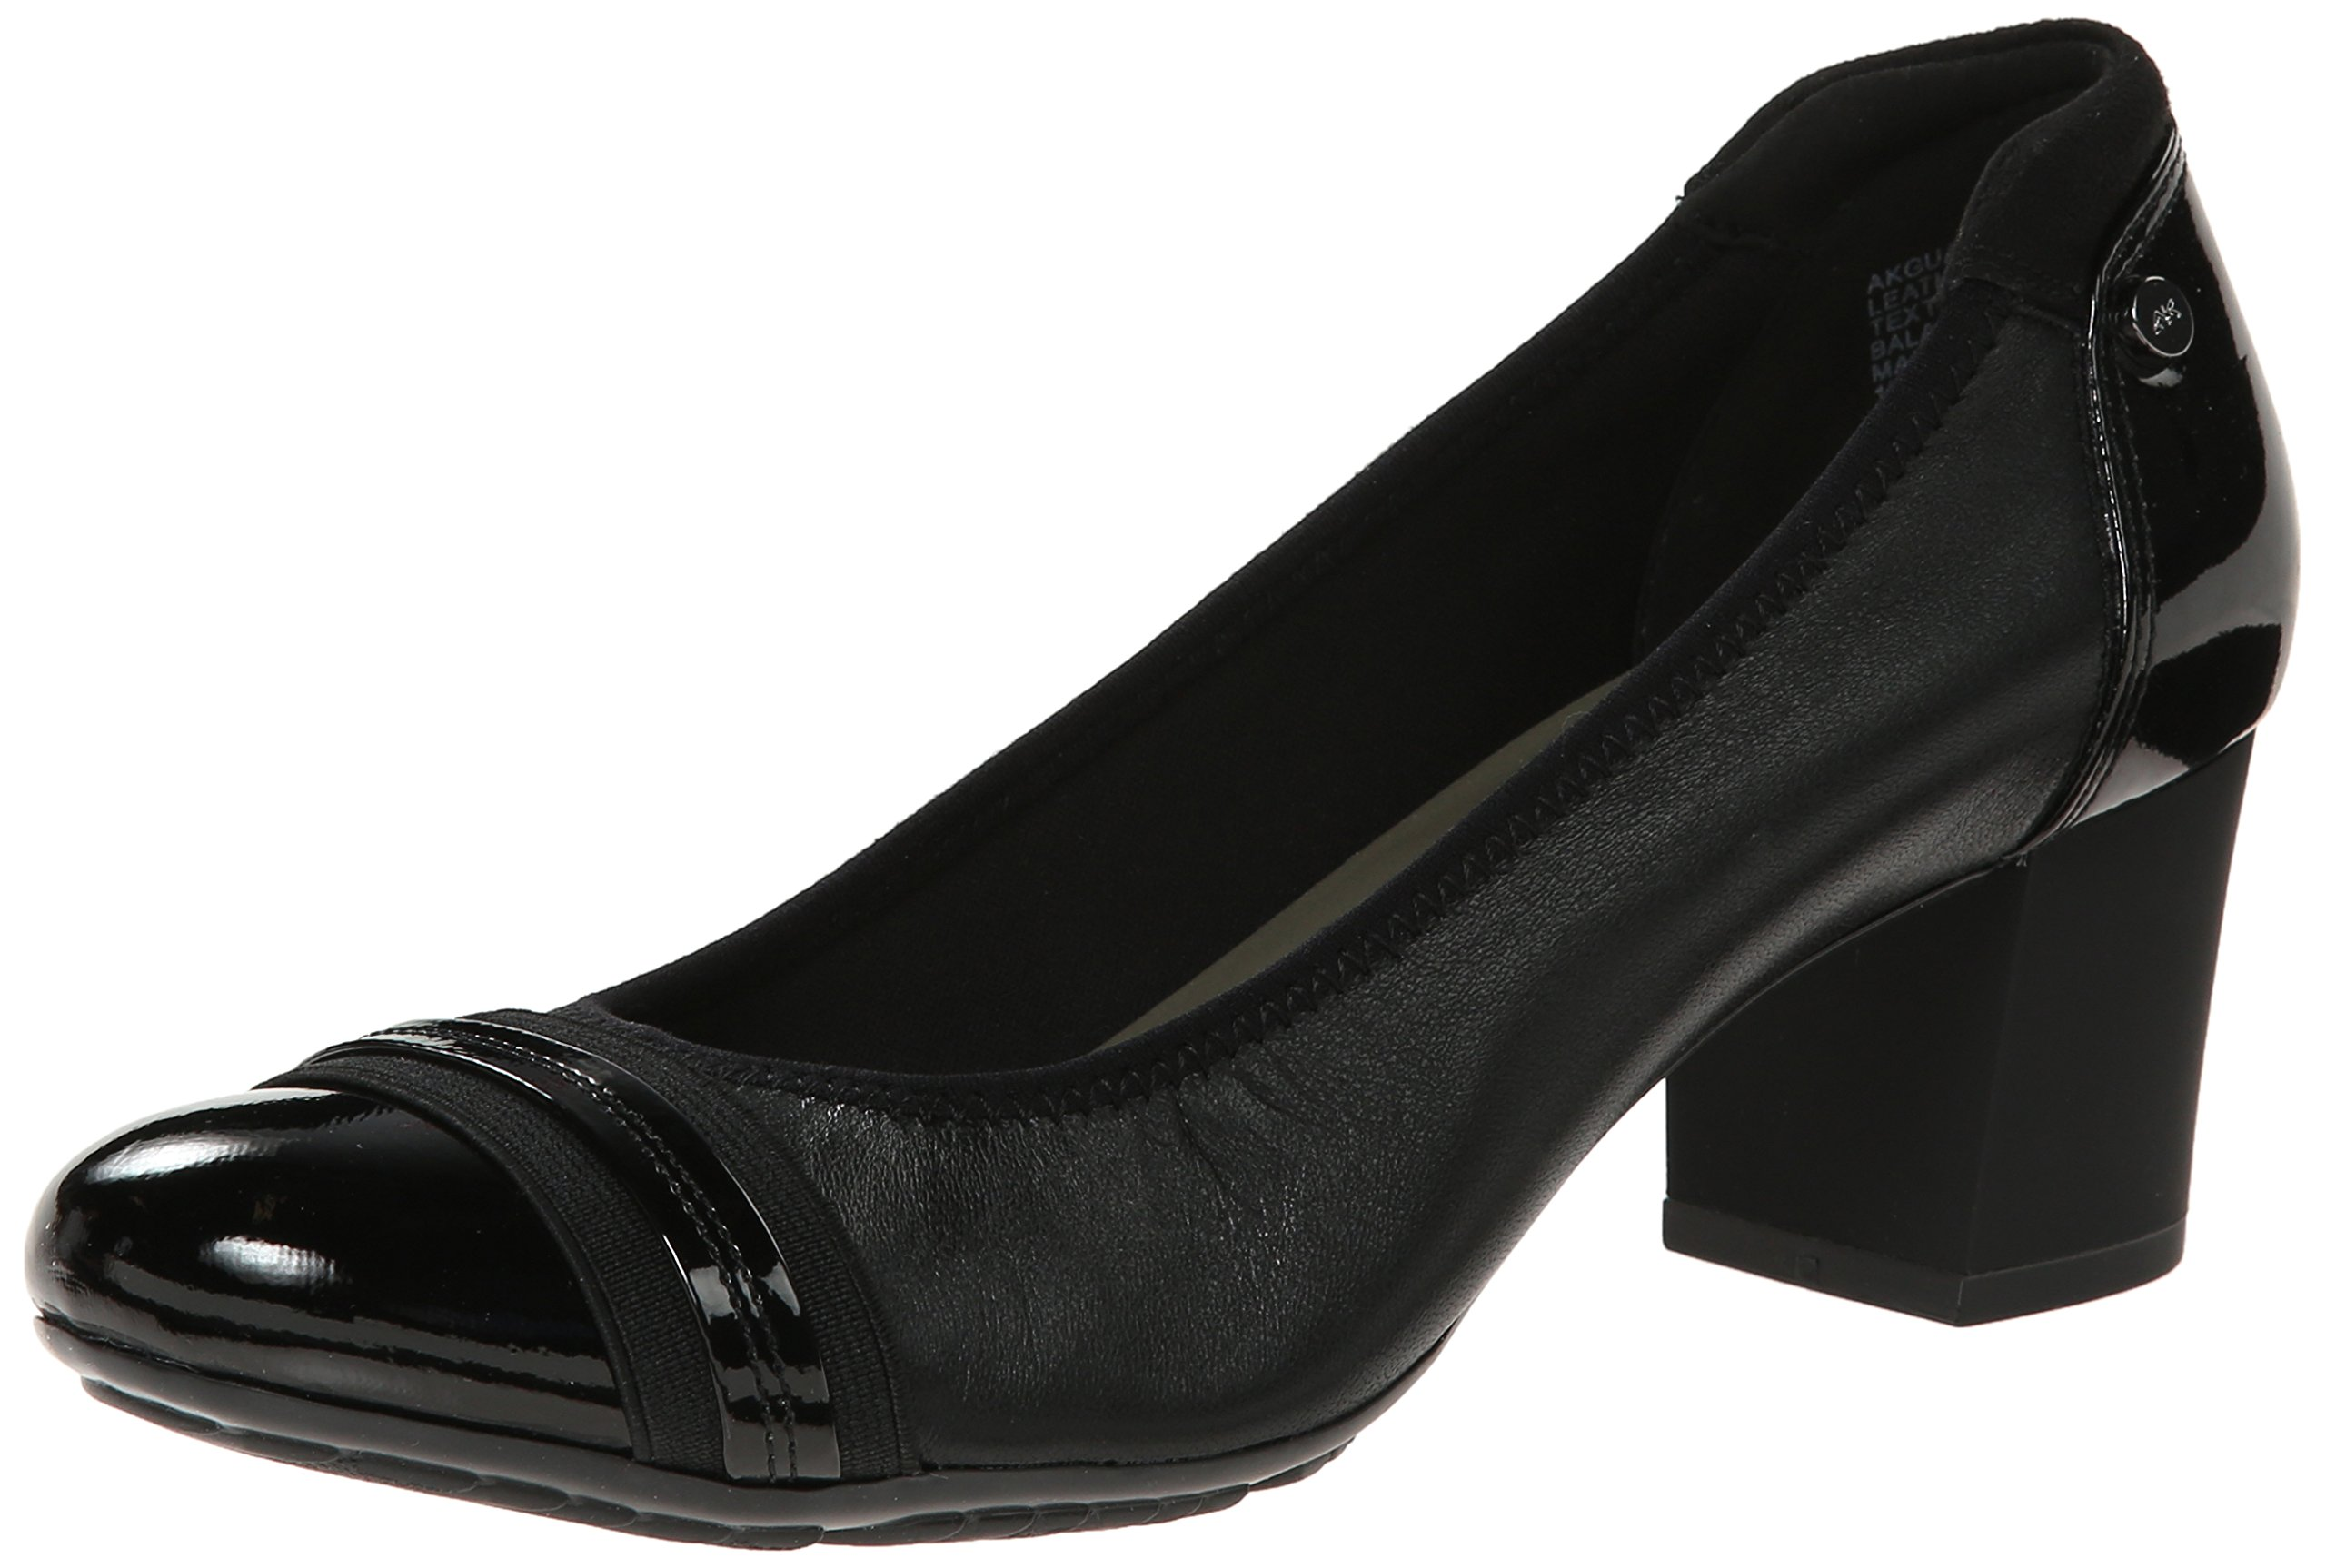 Anne Klein Sport Women's Guardian Leather Dress Pump, Black, 8 M US by Anne Klein